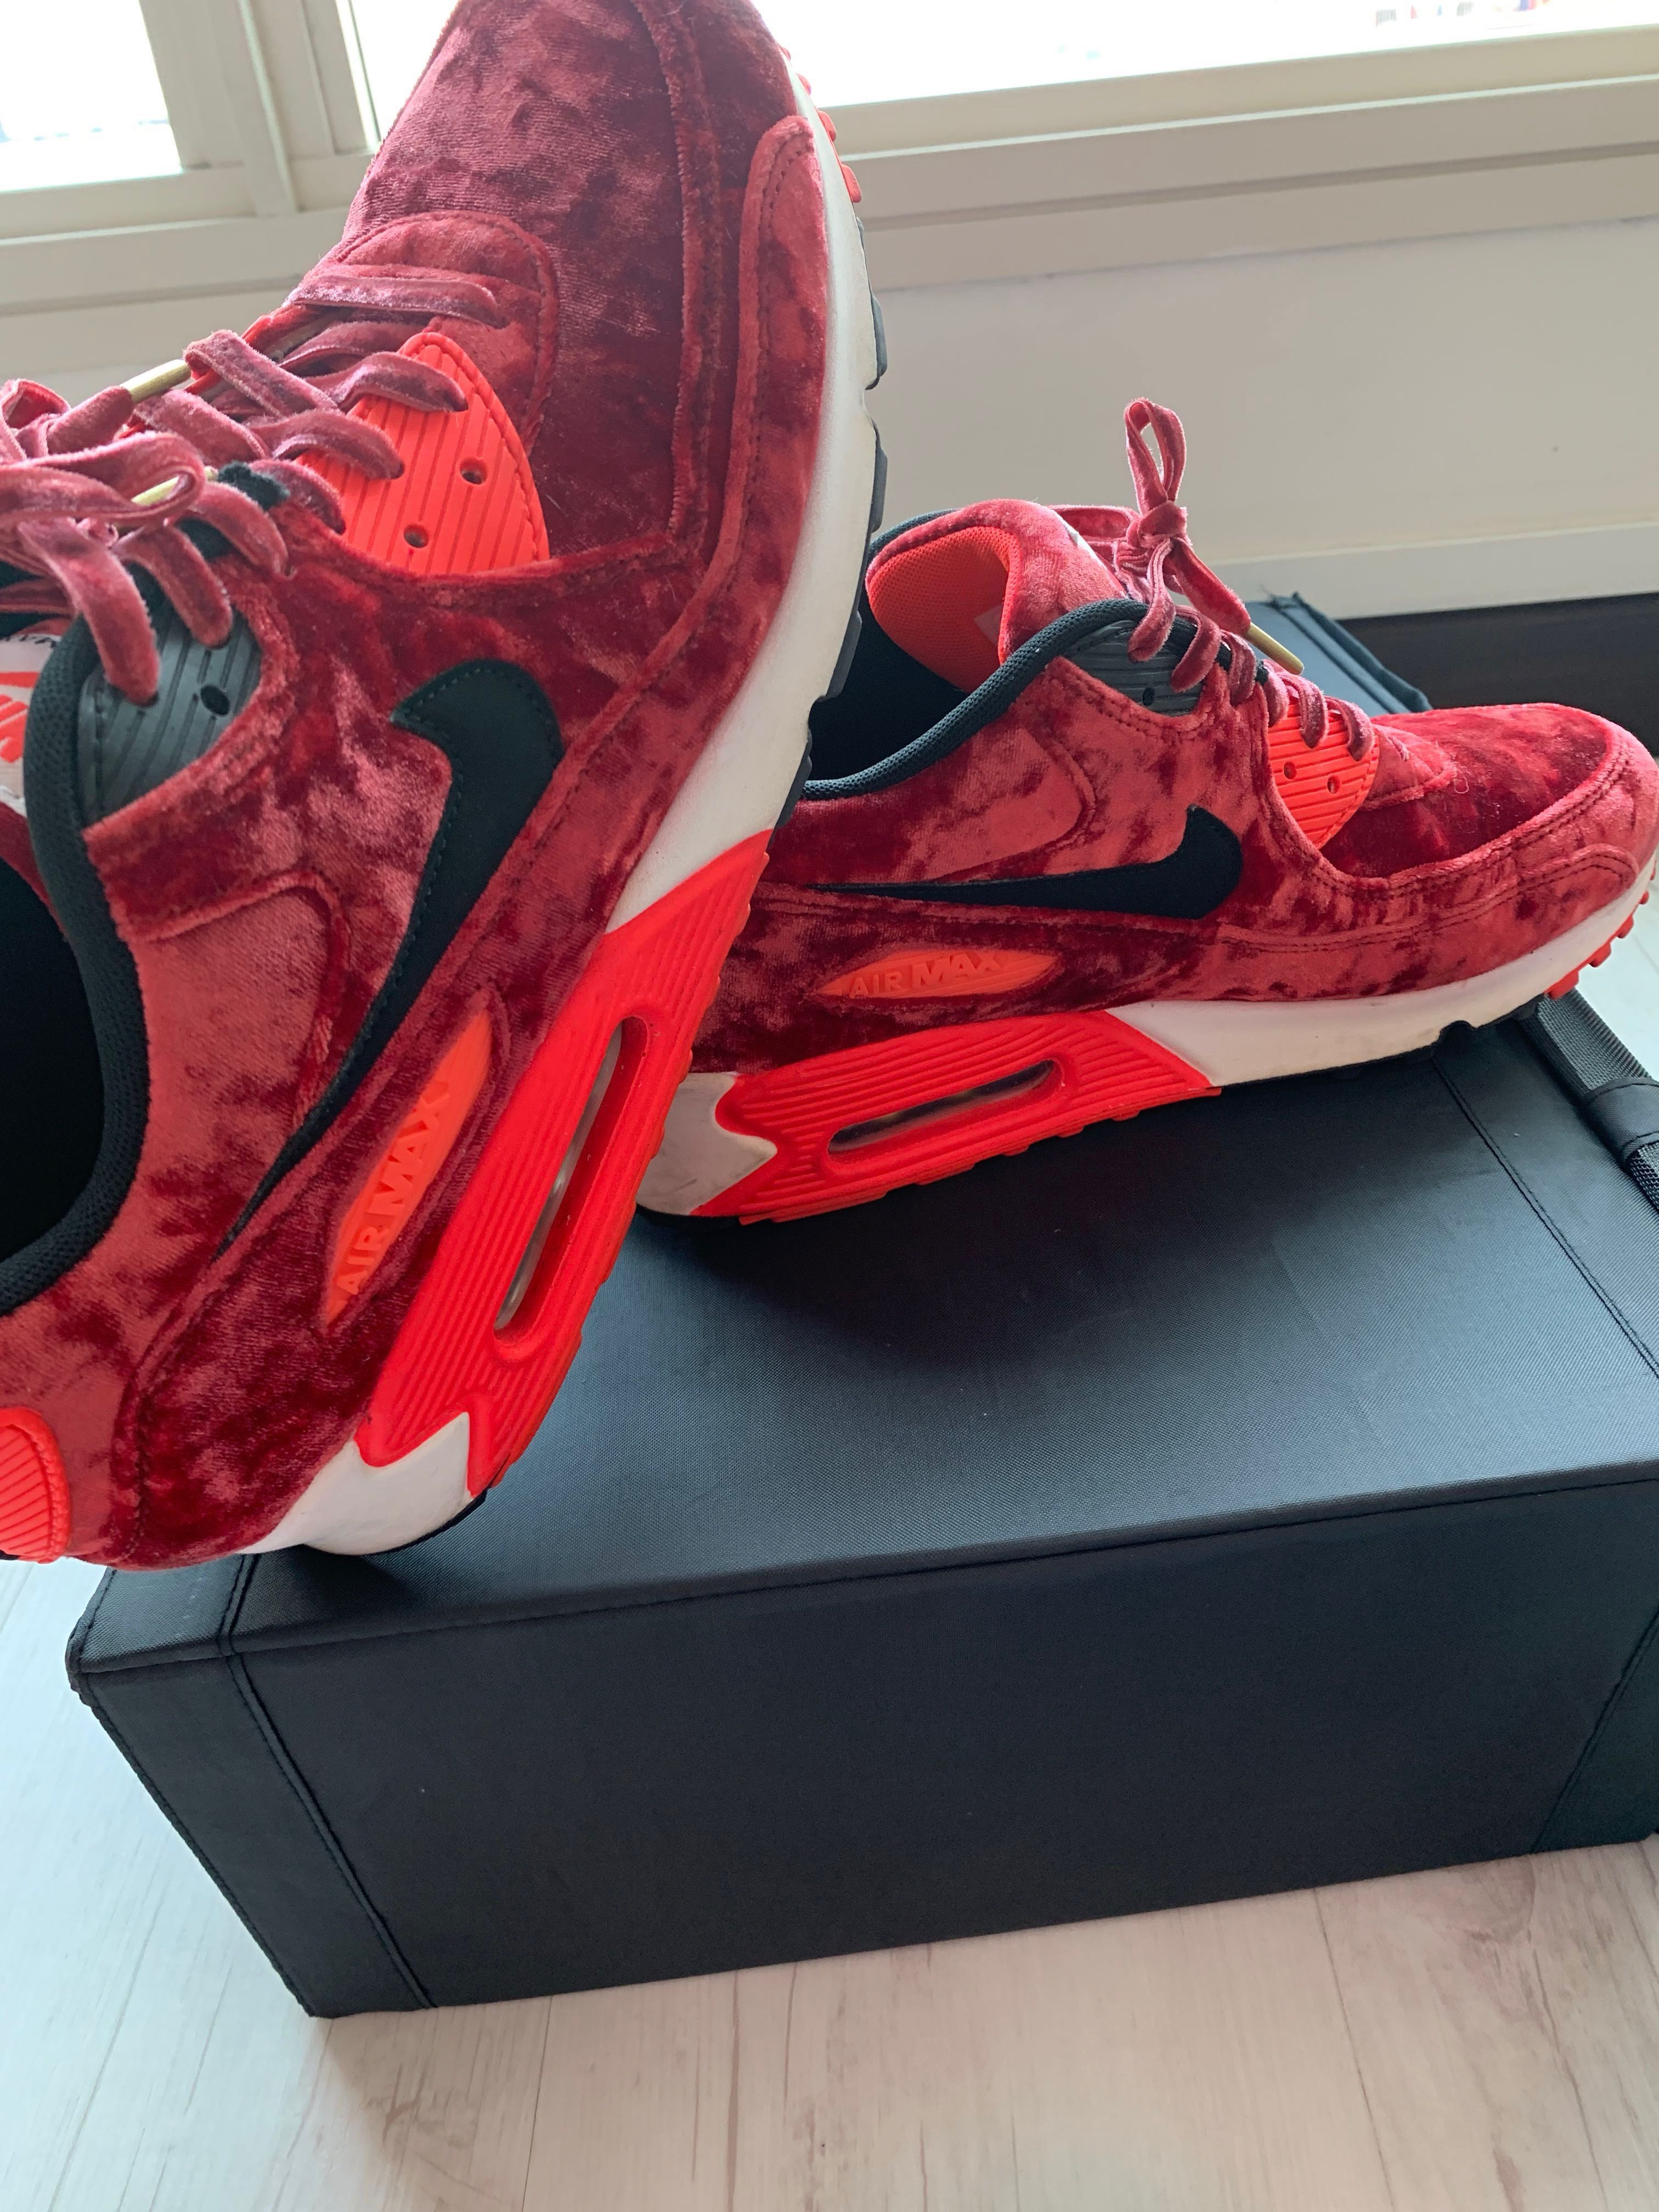 d5c6f97c7a Nike Air Max 90, Men's Fashion, Footwear, Sneakers on Carousell